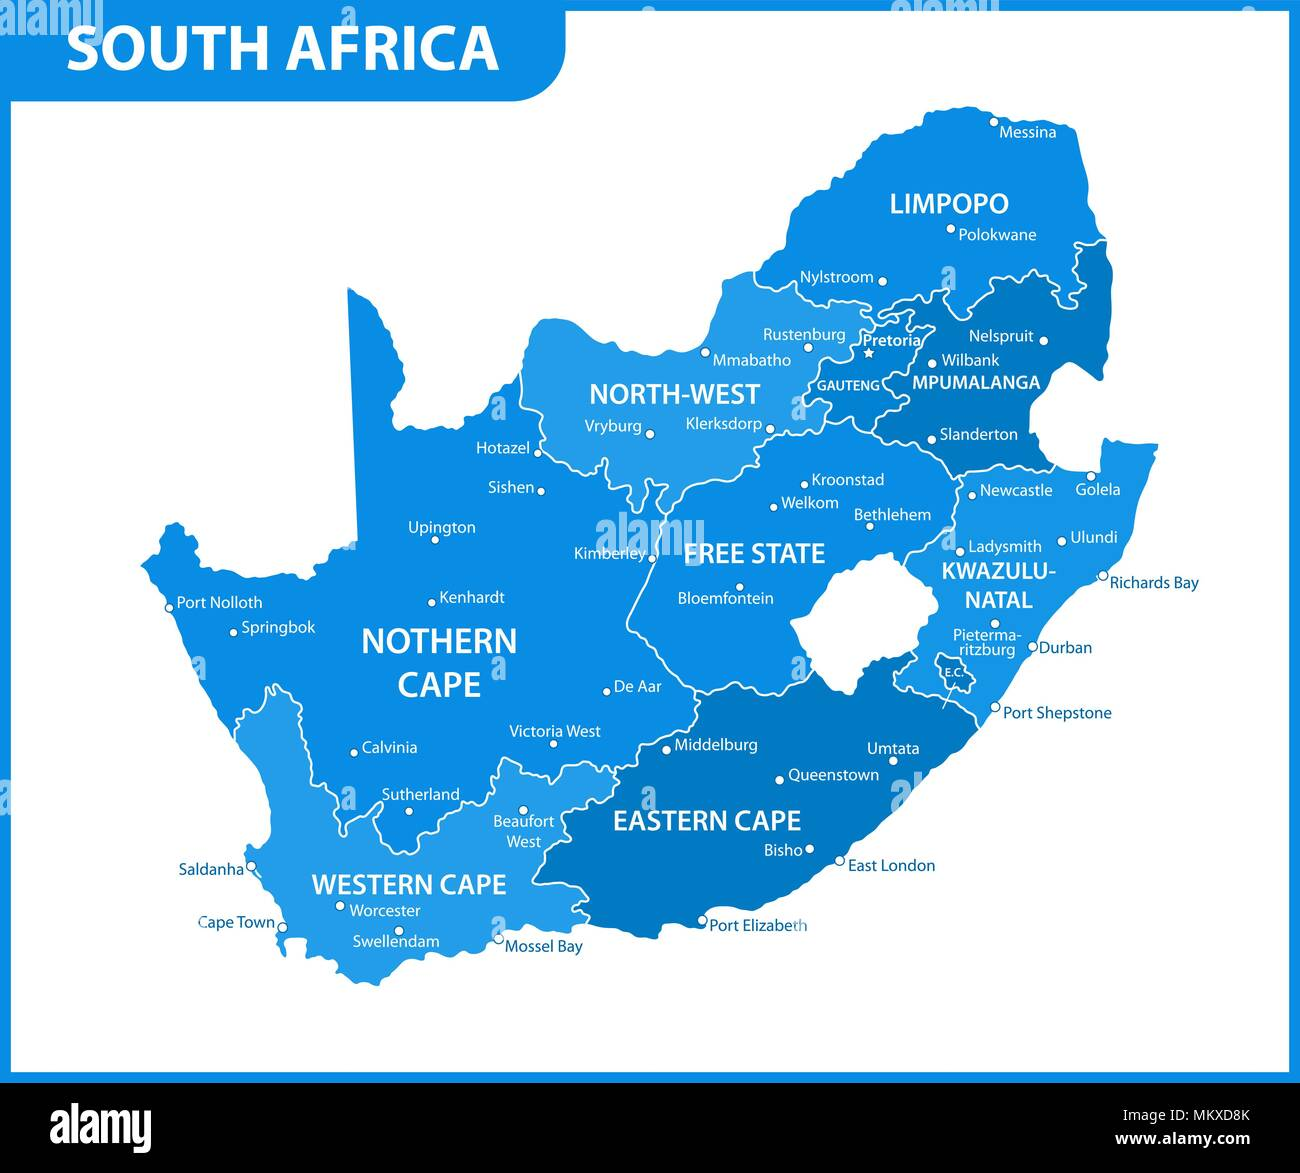 The Detailed Map Of South Africa With Regions Or States